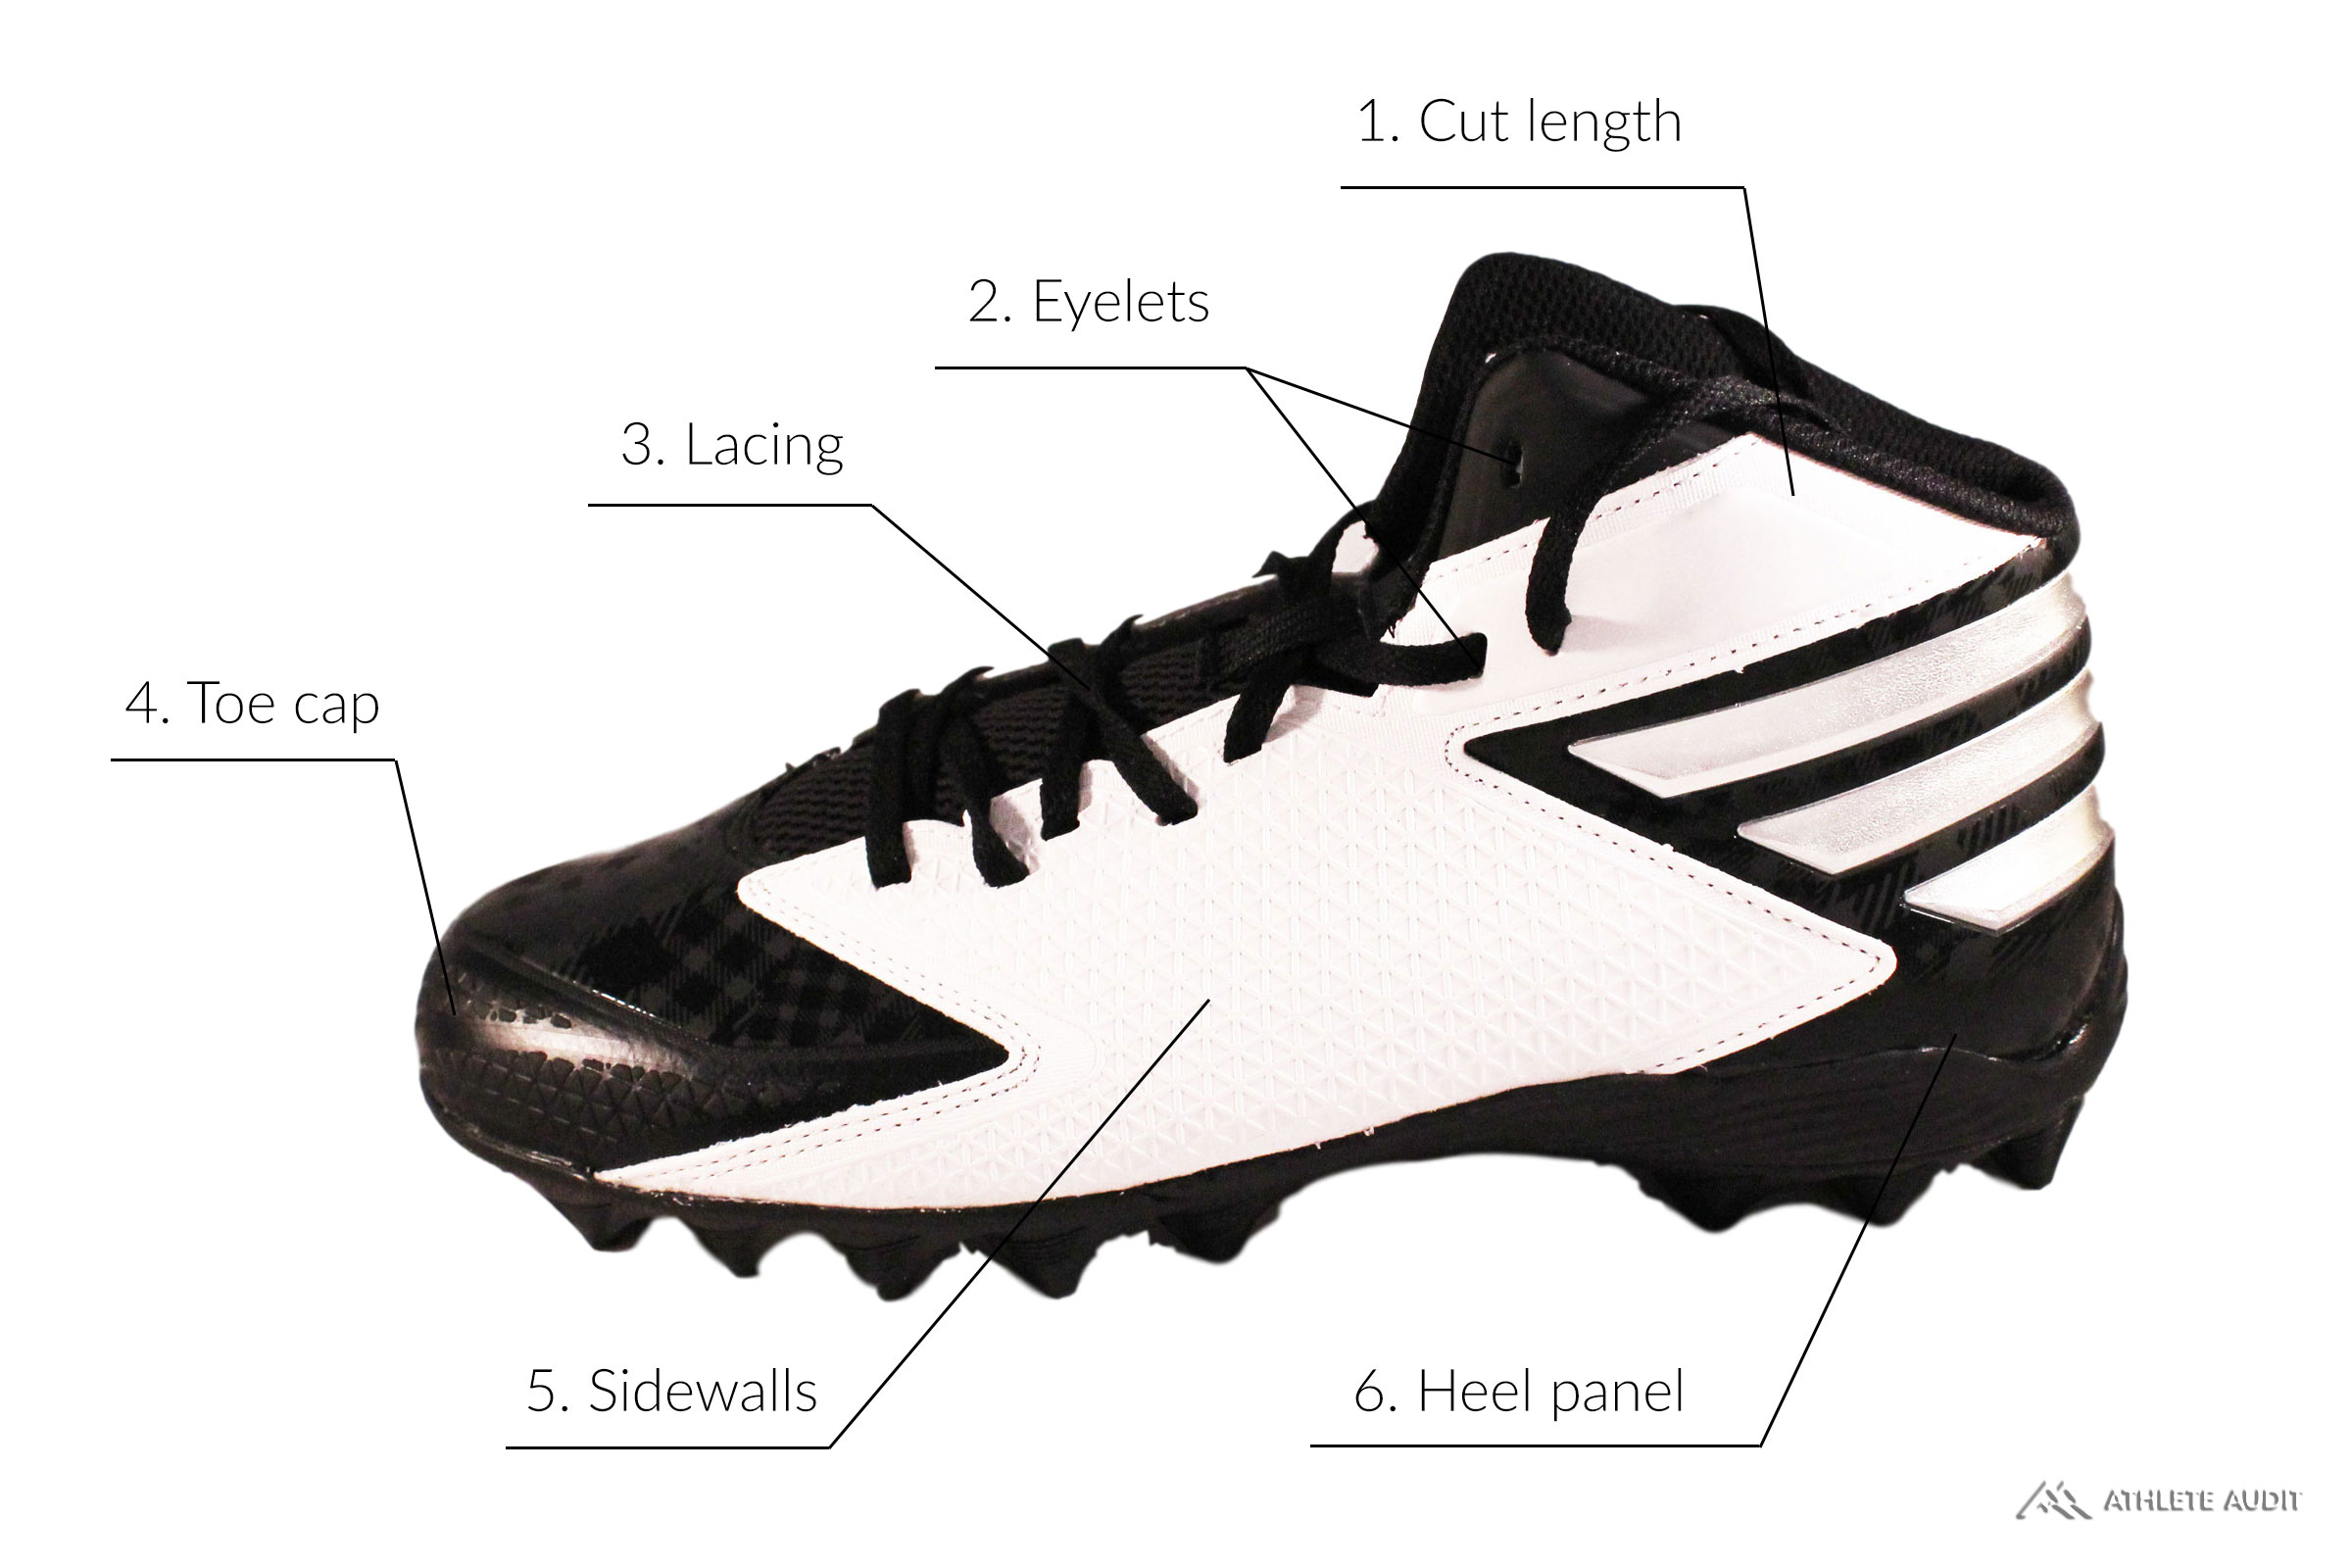 Parts of a Football Cleat - Outer - Anatomy of an Athletic Shoe - Athlete Audit